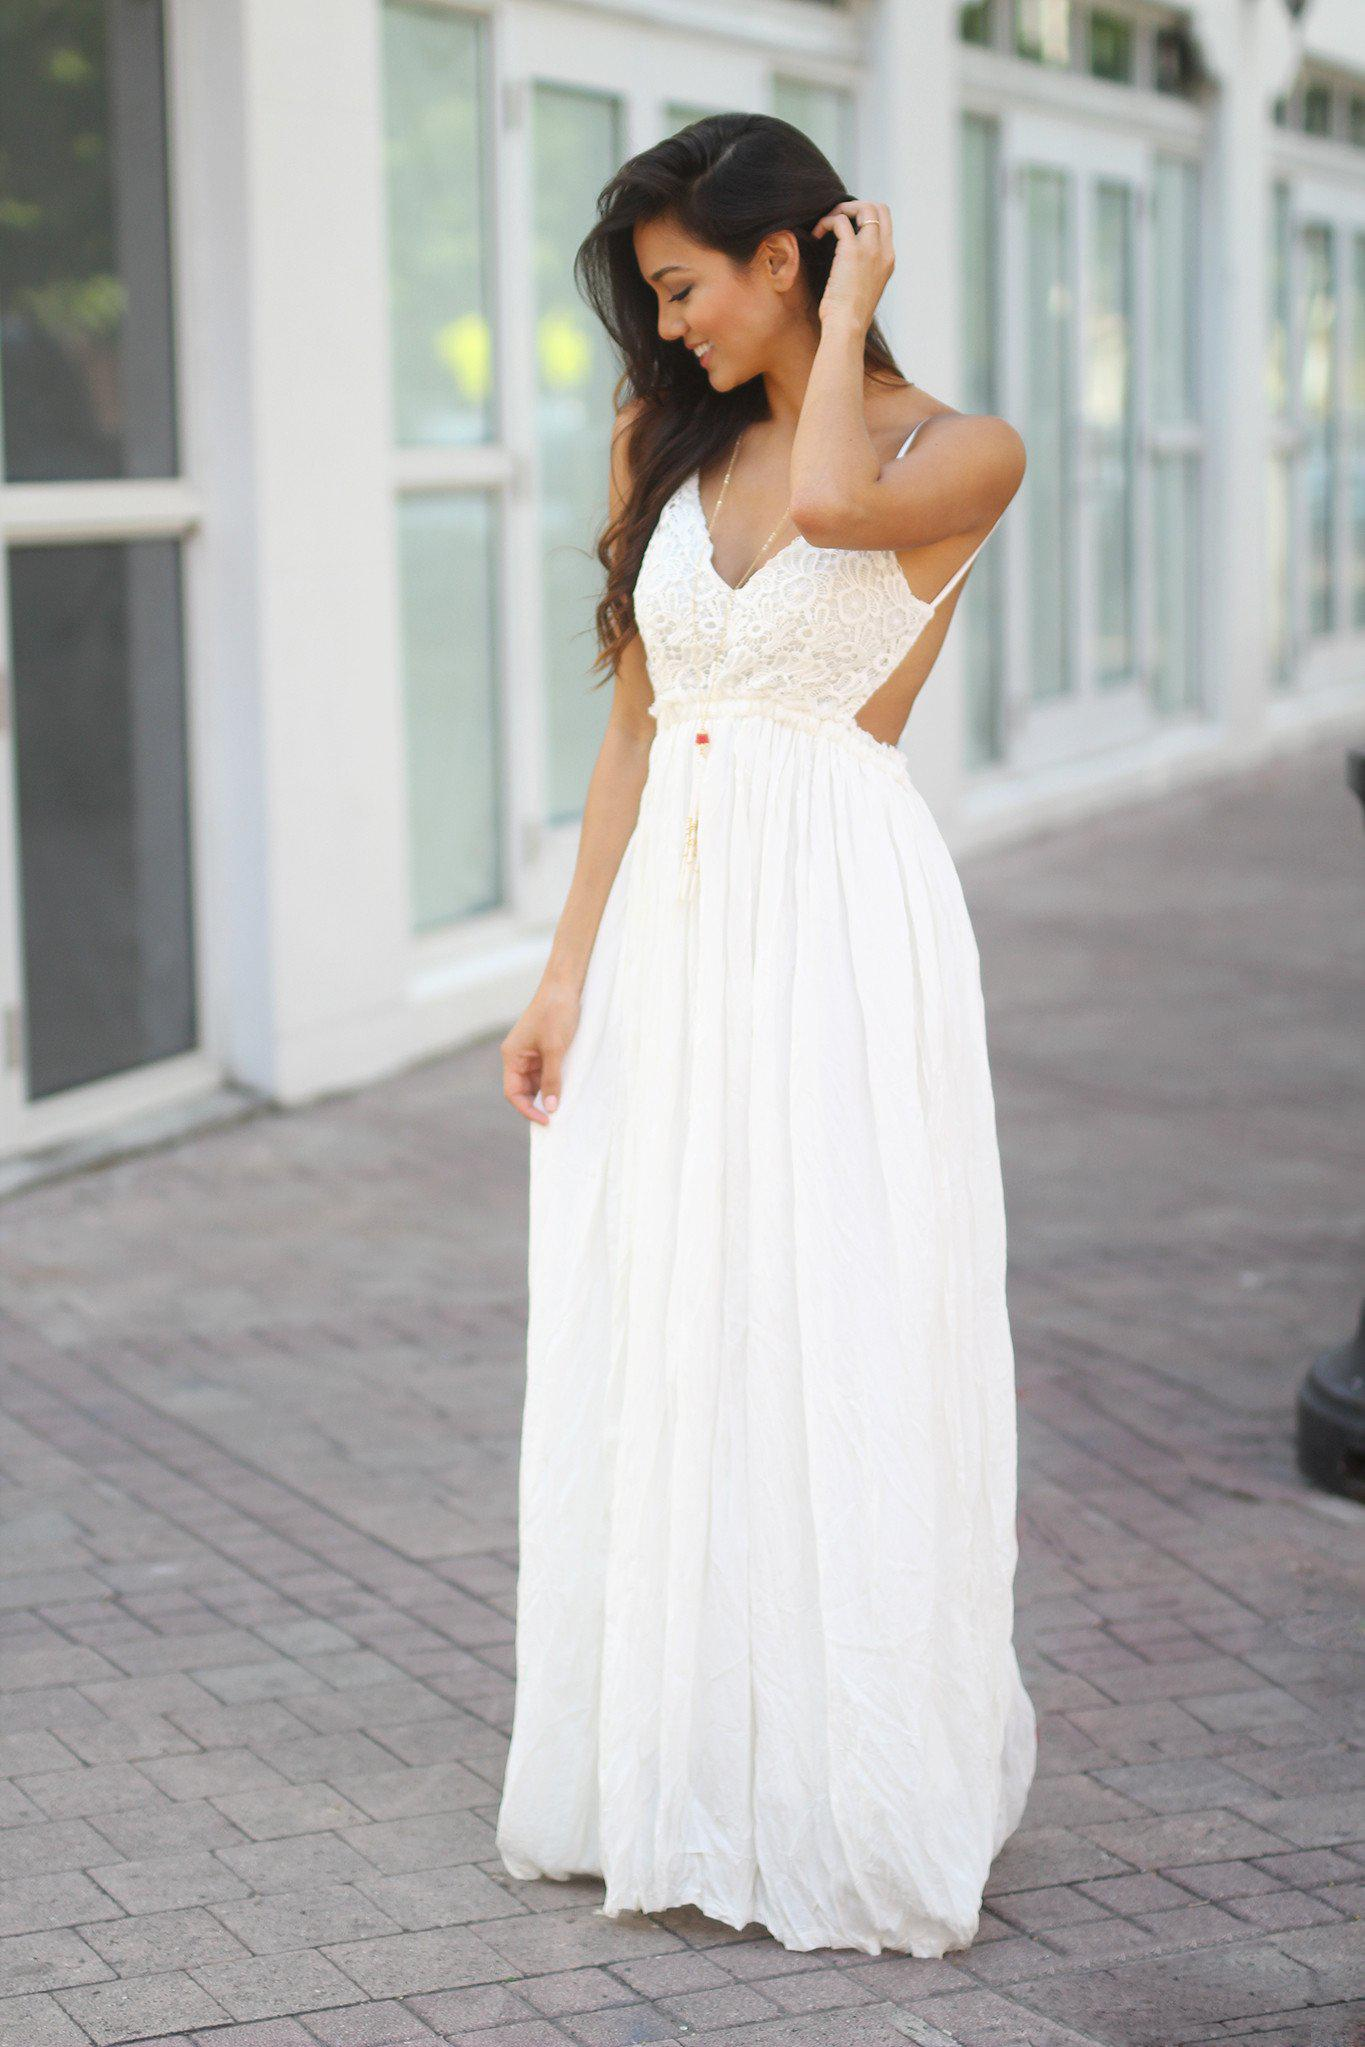 White Lace Maxi Dress with Open Back and Frayed Hem | Maxi Dresses ...